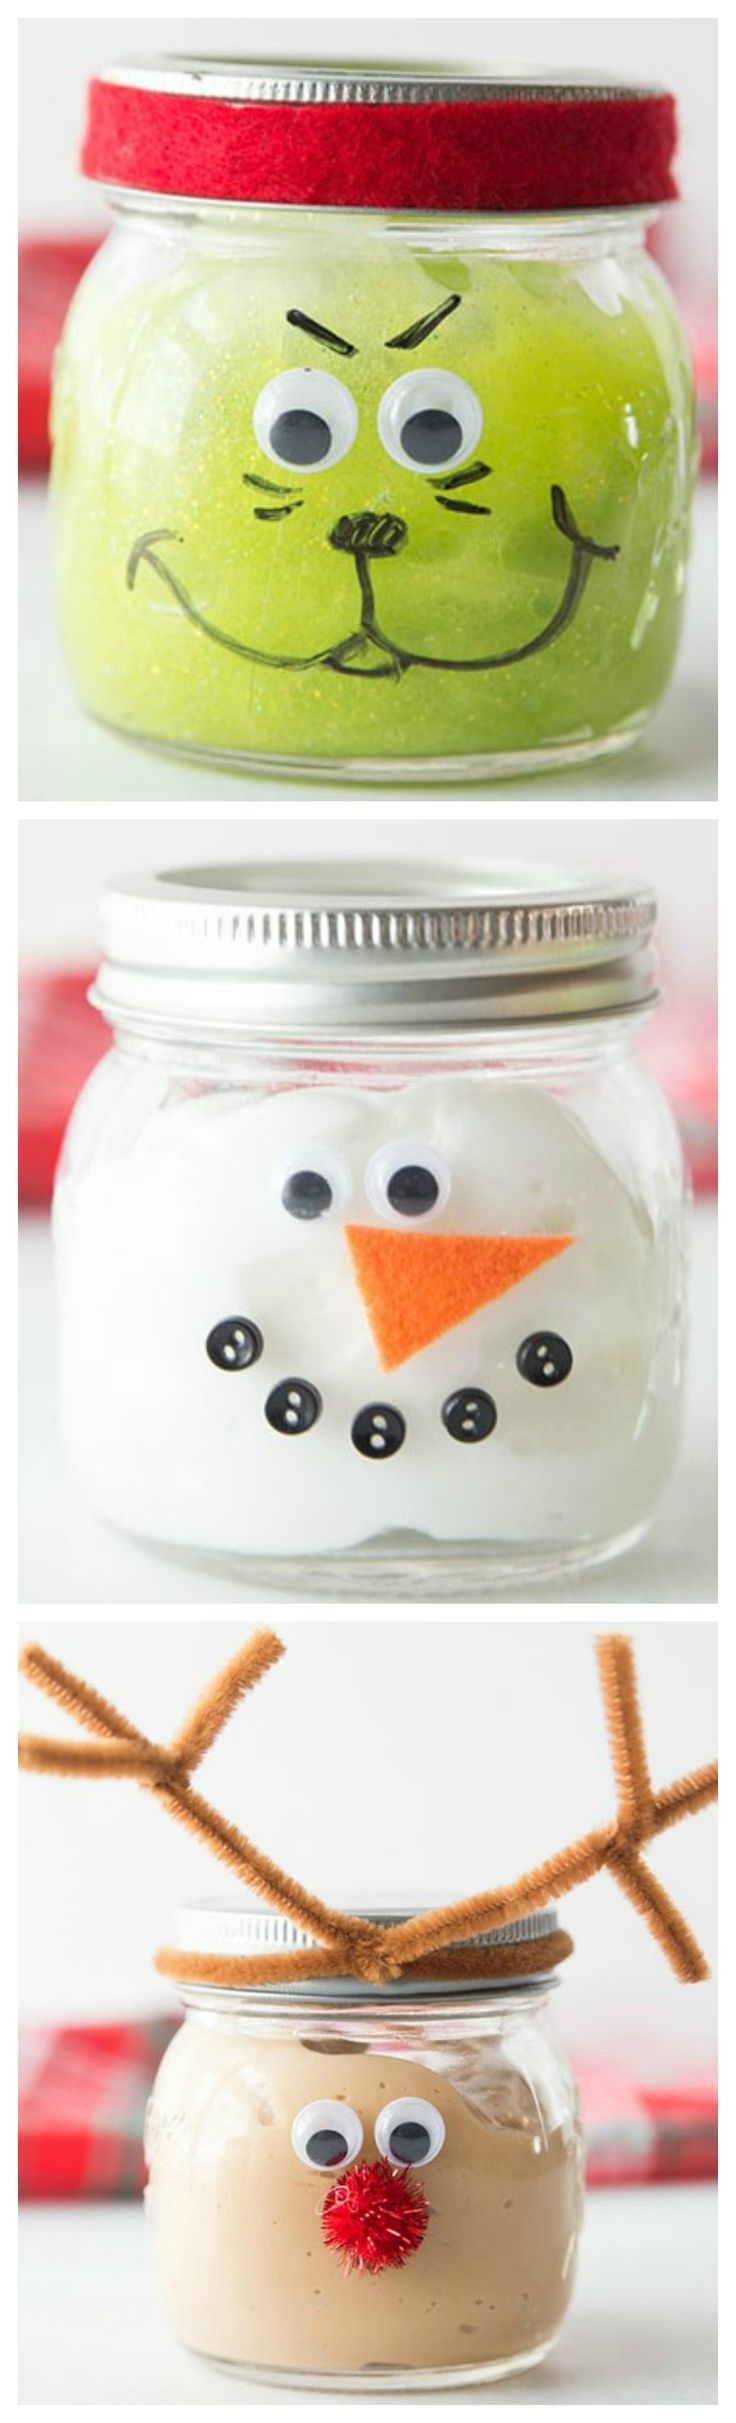 Christmas Slime ~ These would make fun Christmas gifts or would even just be a fun Christmas activity for kids to do.